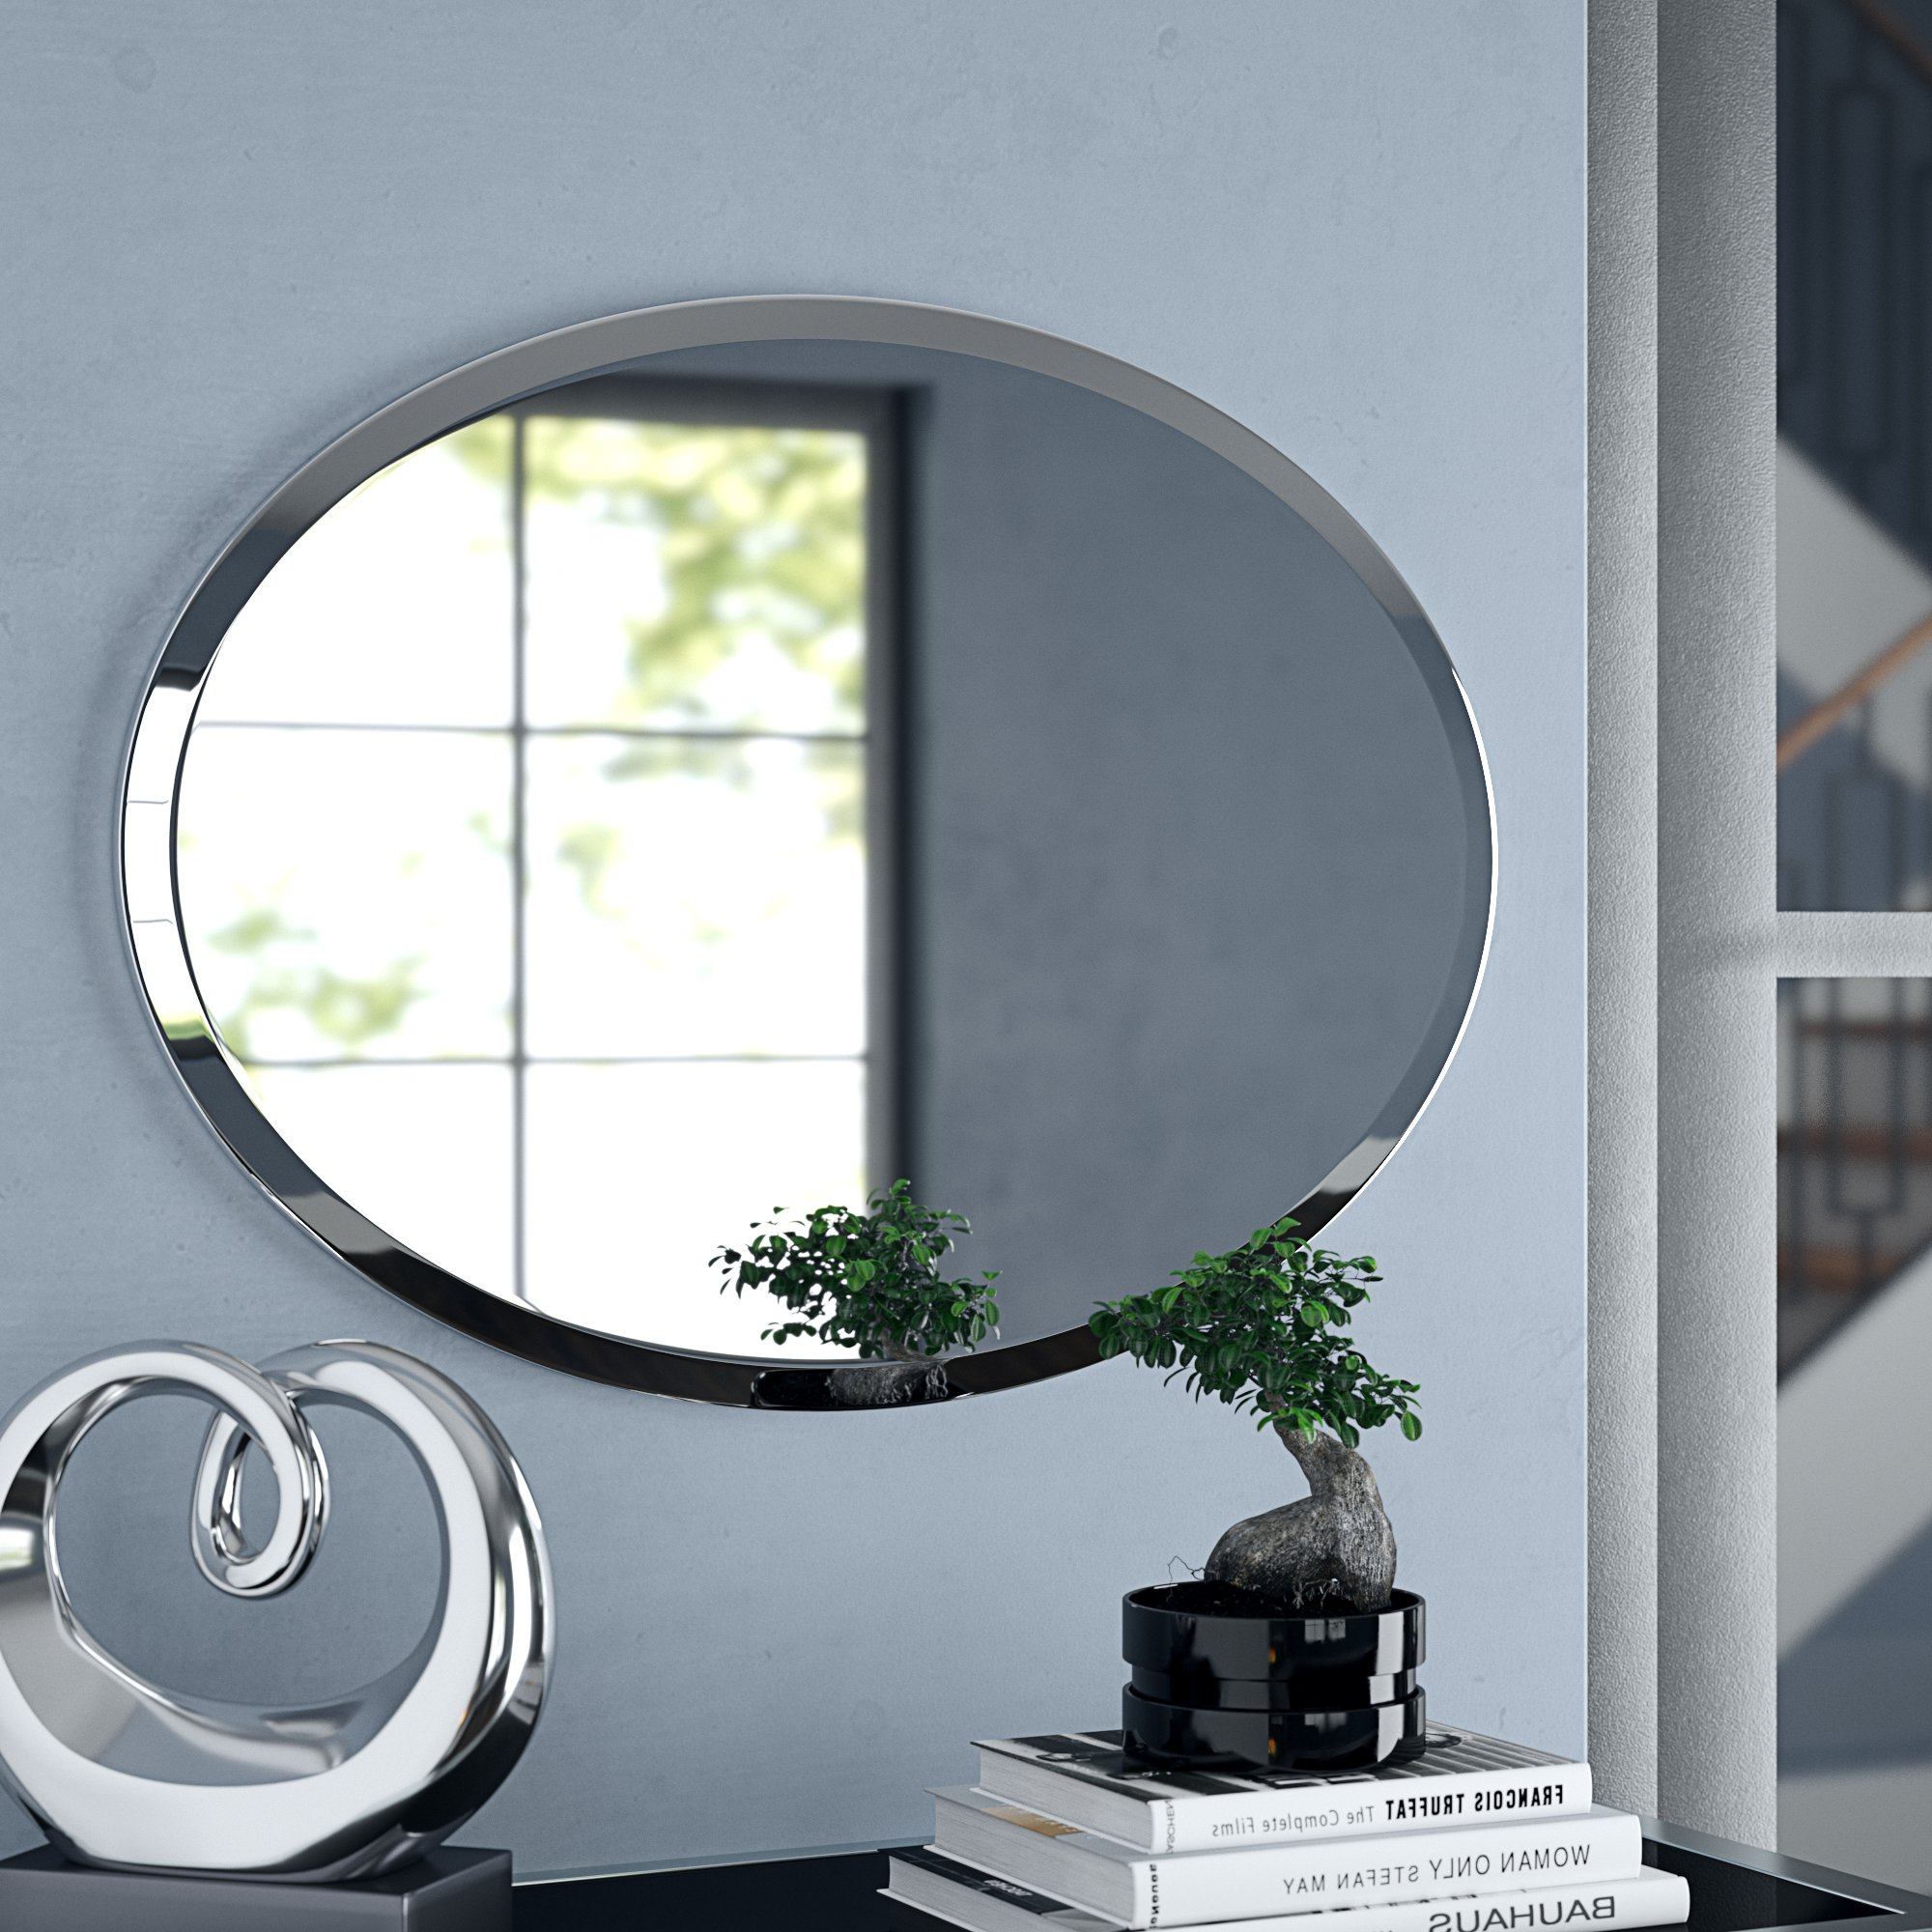 Most Recently Released Provenzano Frameless Beveled Oval Wall Mirror Within Frameless Beveled Wall Mirrors (View 20 of 20)